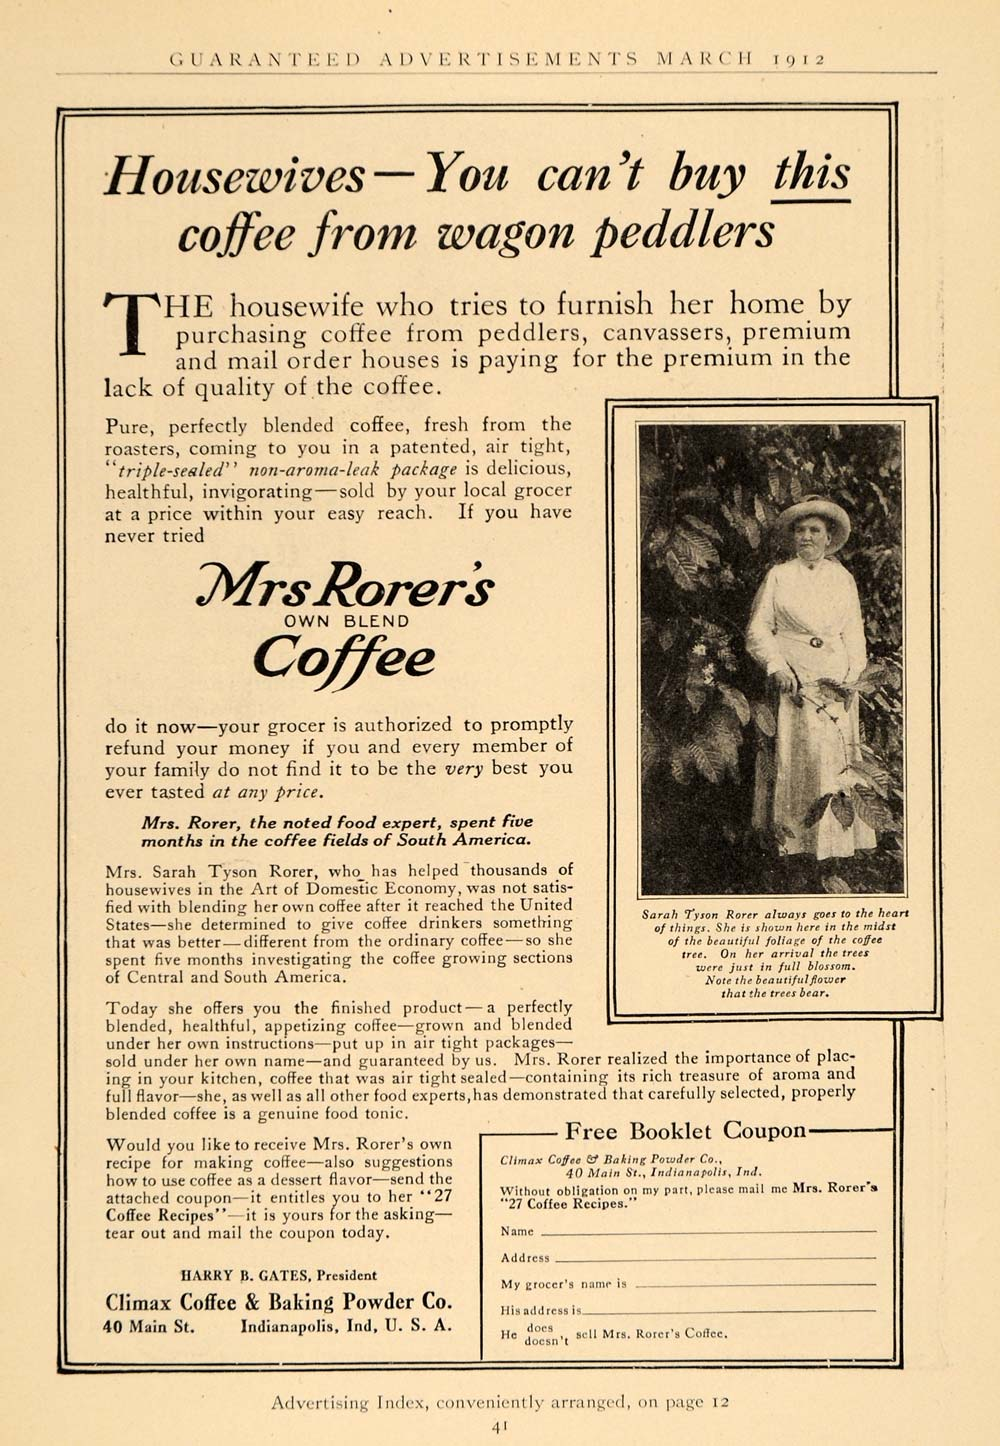 1912 Ad Climax Coffee Baking Powder Sarah Tyson Rorer - ORIGINAL ADVERTISING GH2